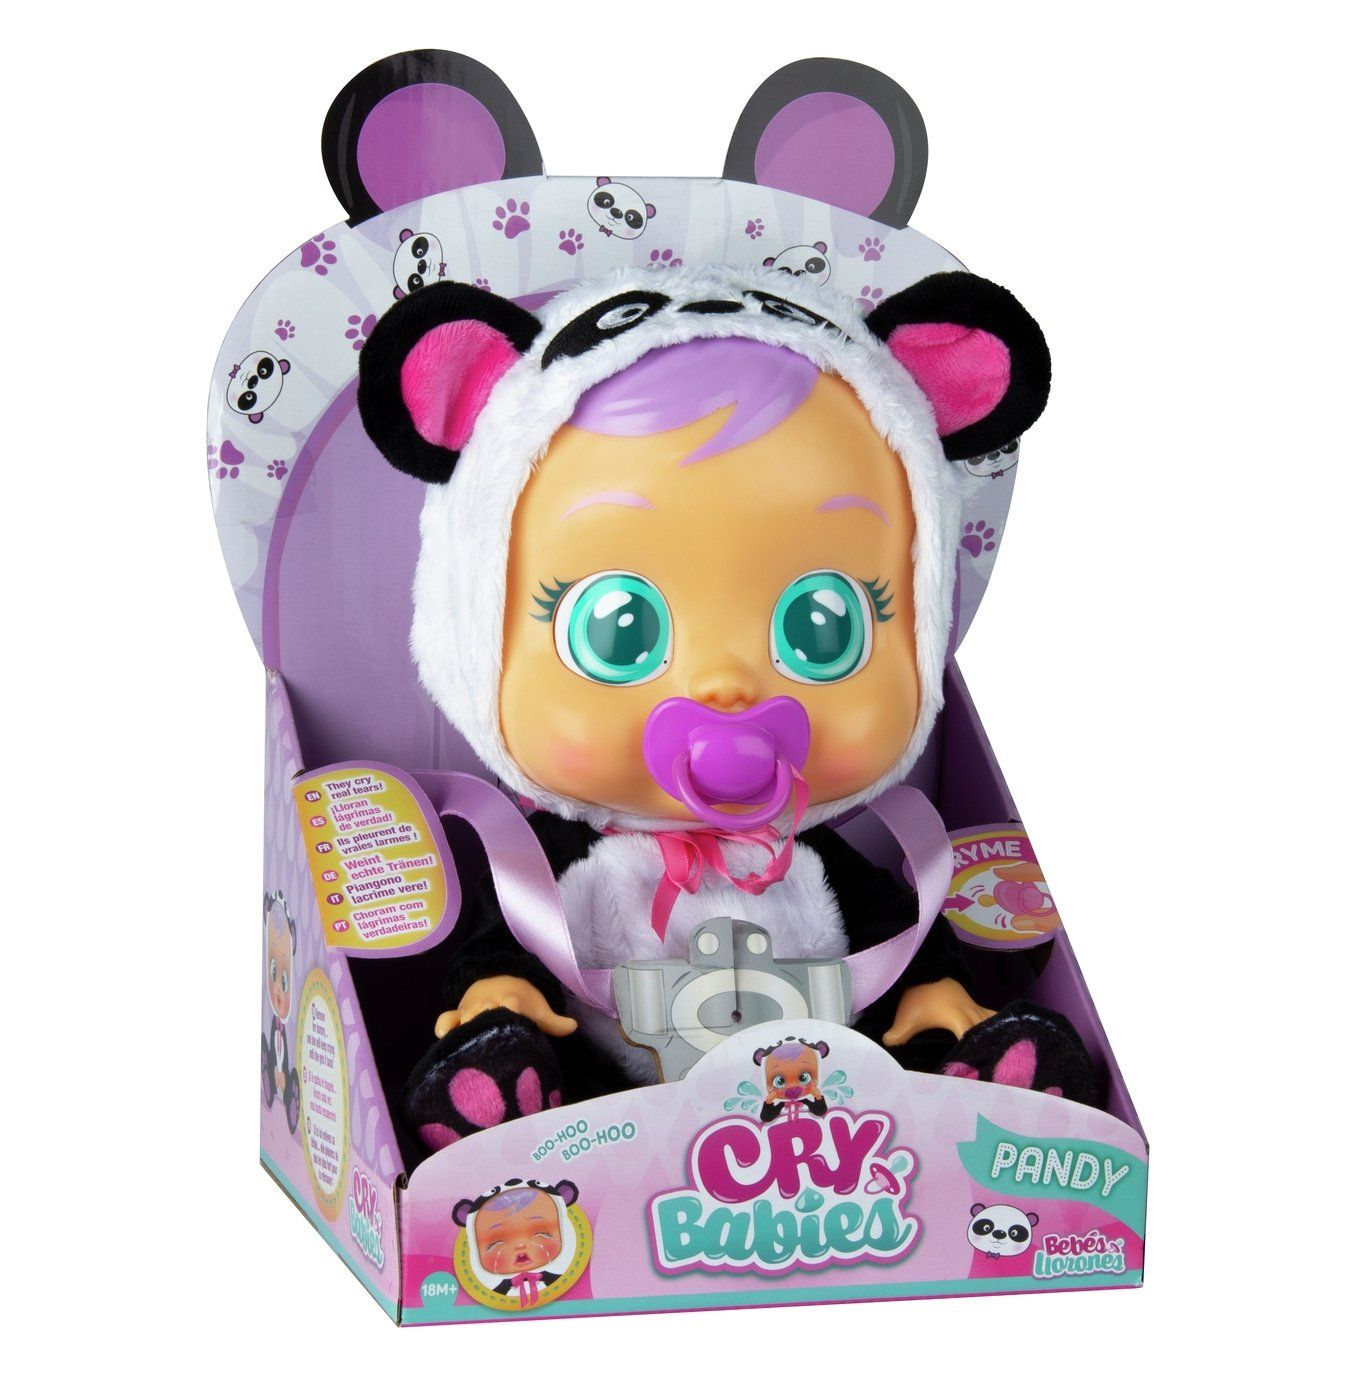 Buy Cry Babies Pandy Dolls Argos In 2020 Baby Crying Cry Baby Baby Doll Accessories